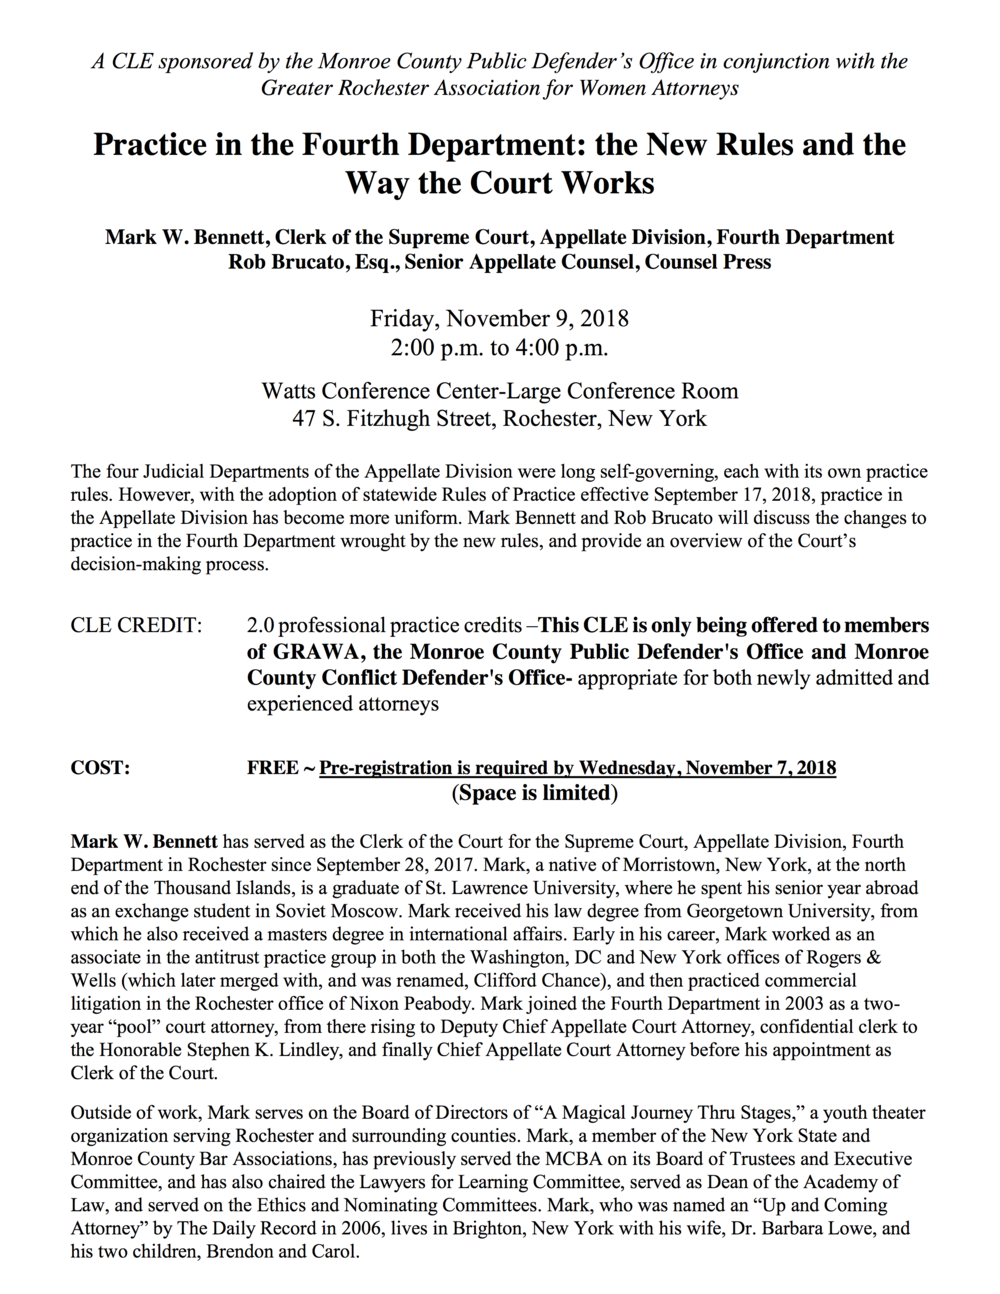 Practice in the Fourth Department-New Rules and the Way the Court Works 11.9.18 CLE Announcement (2).png